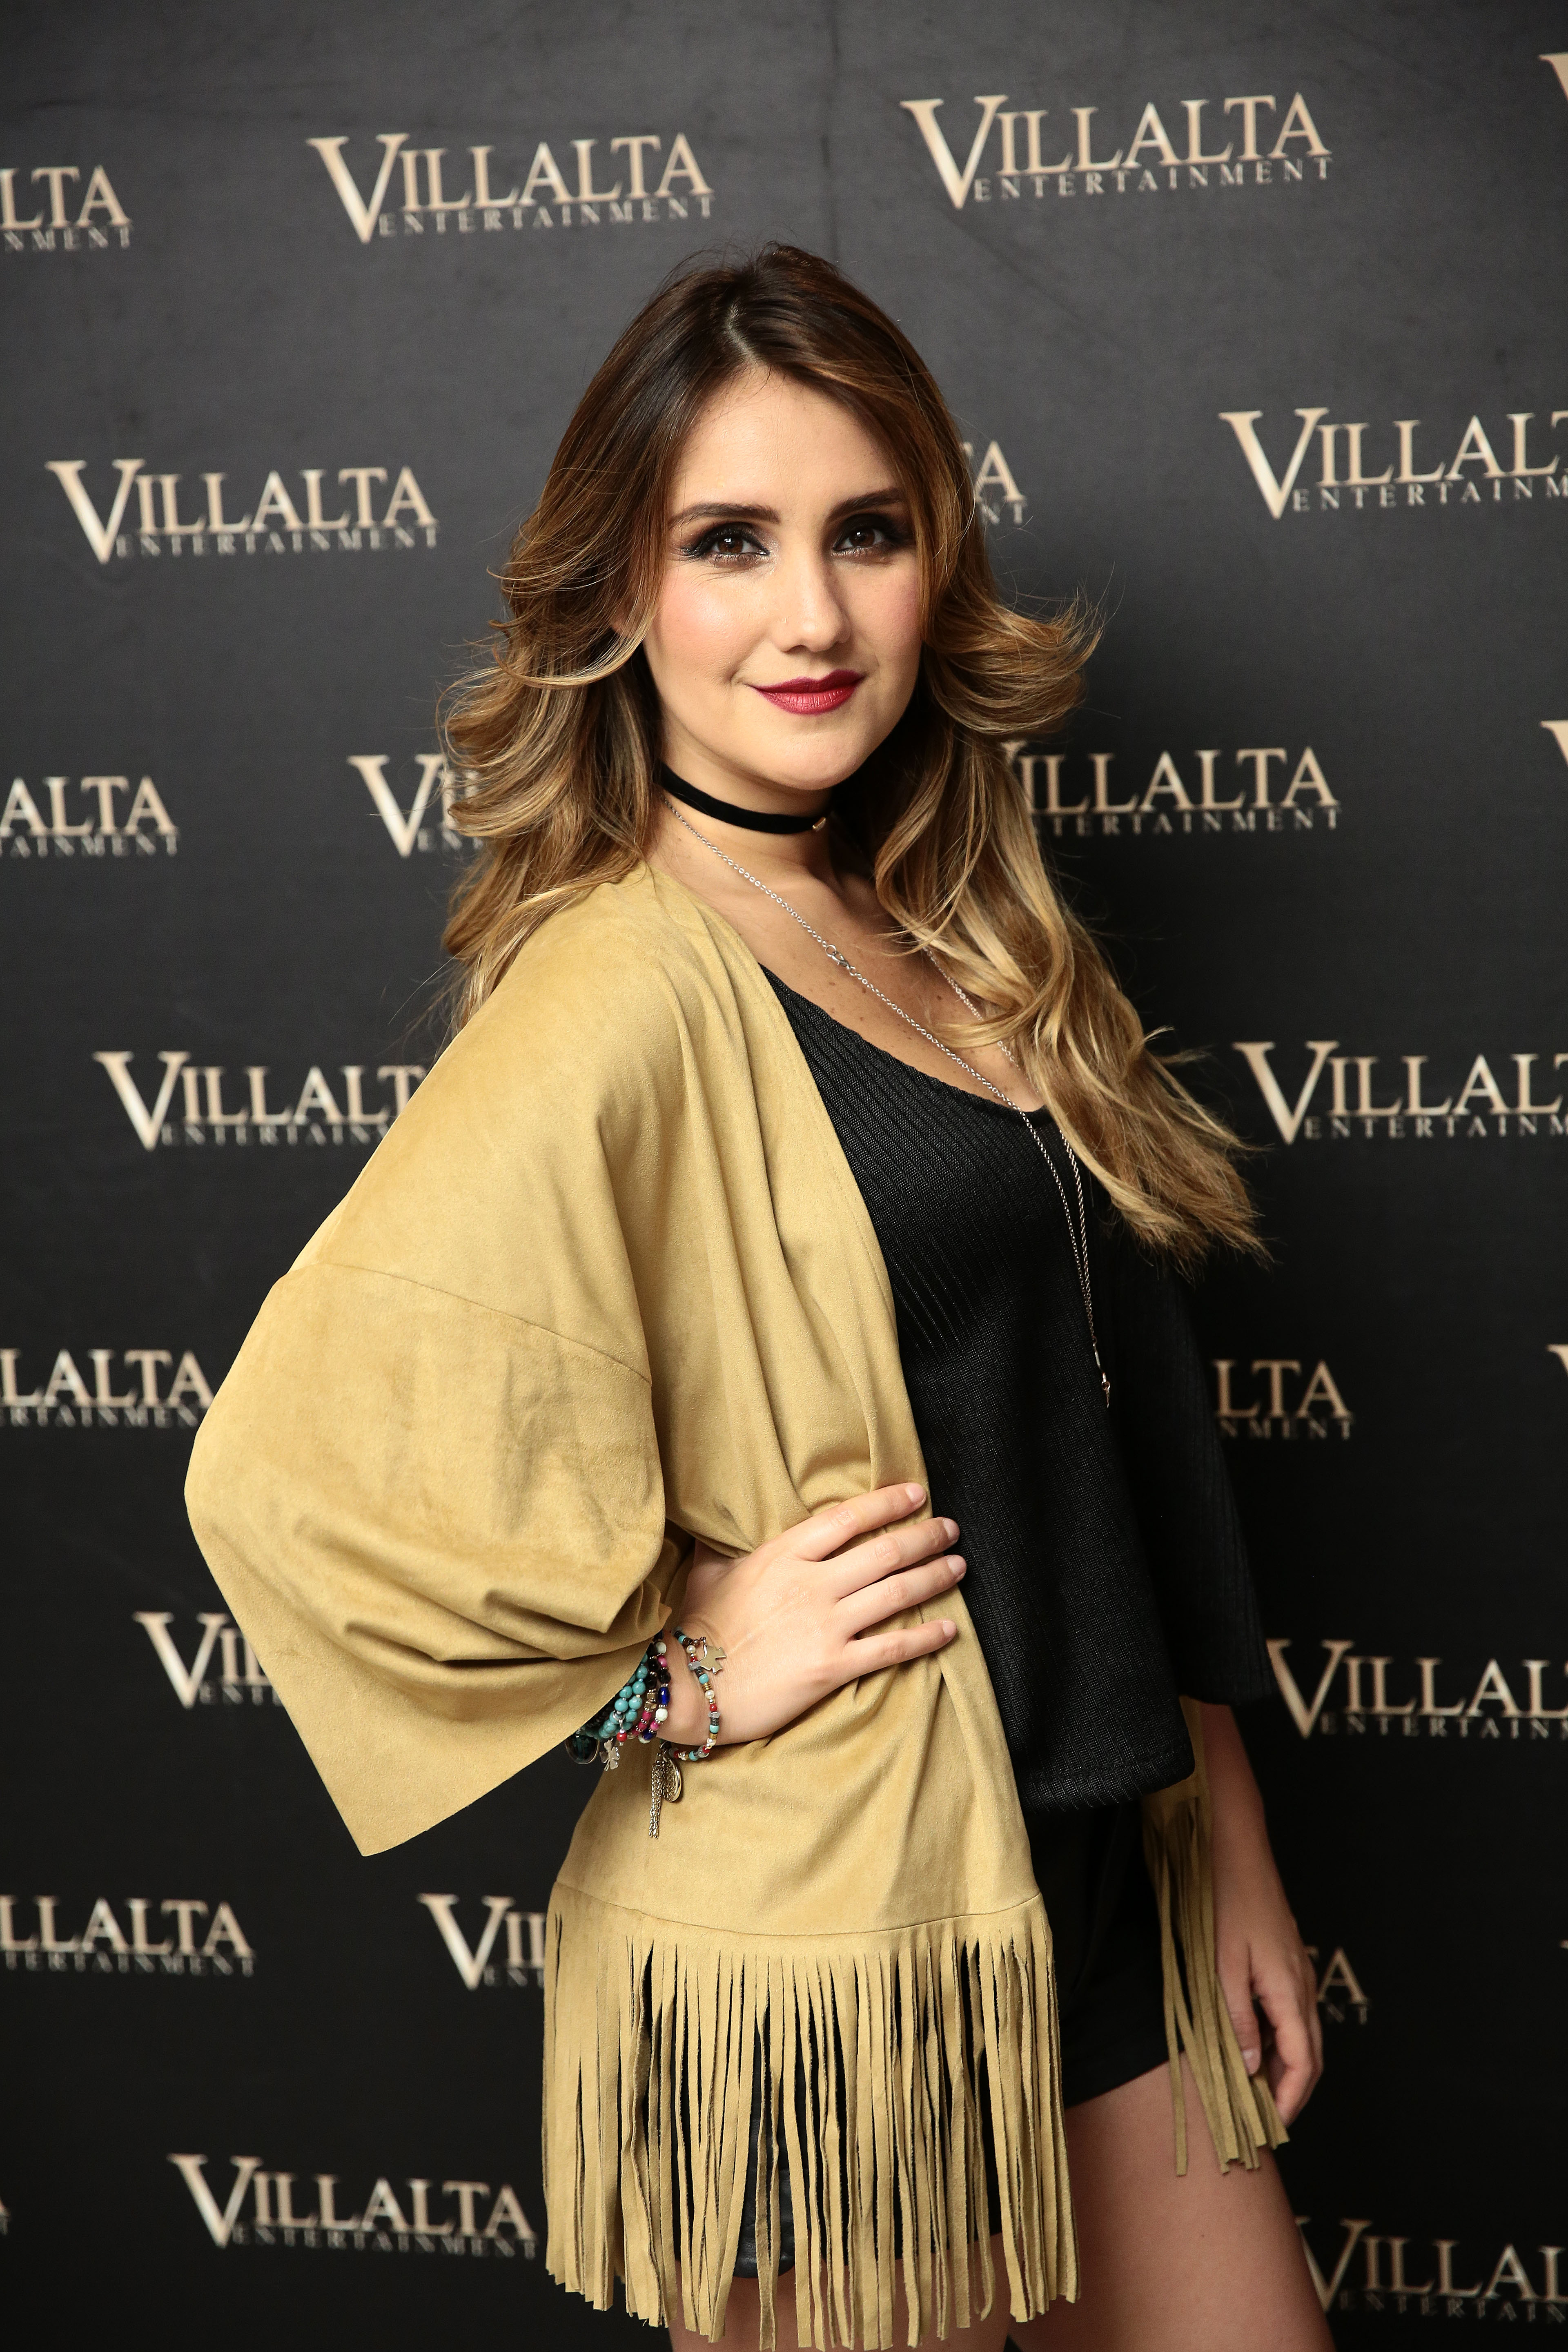 Dulce Maria Poses For a Photo Session In Madrid